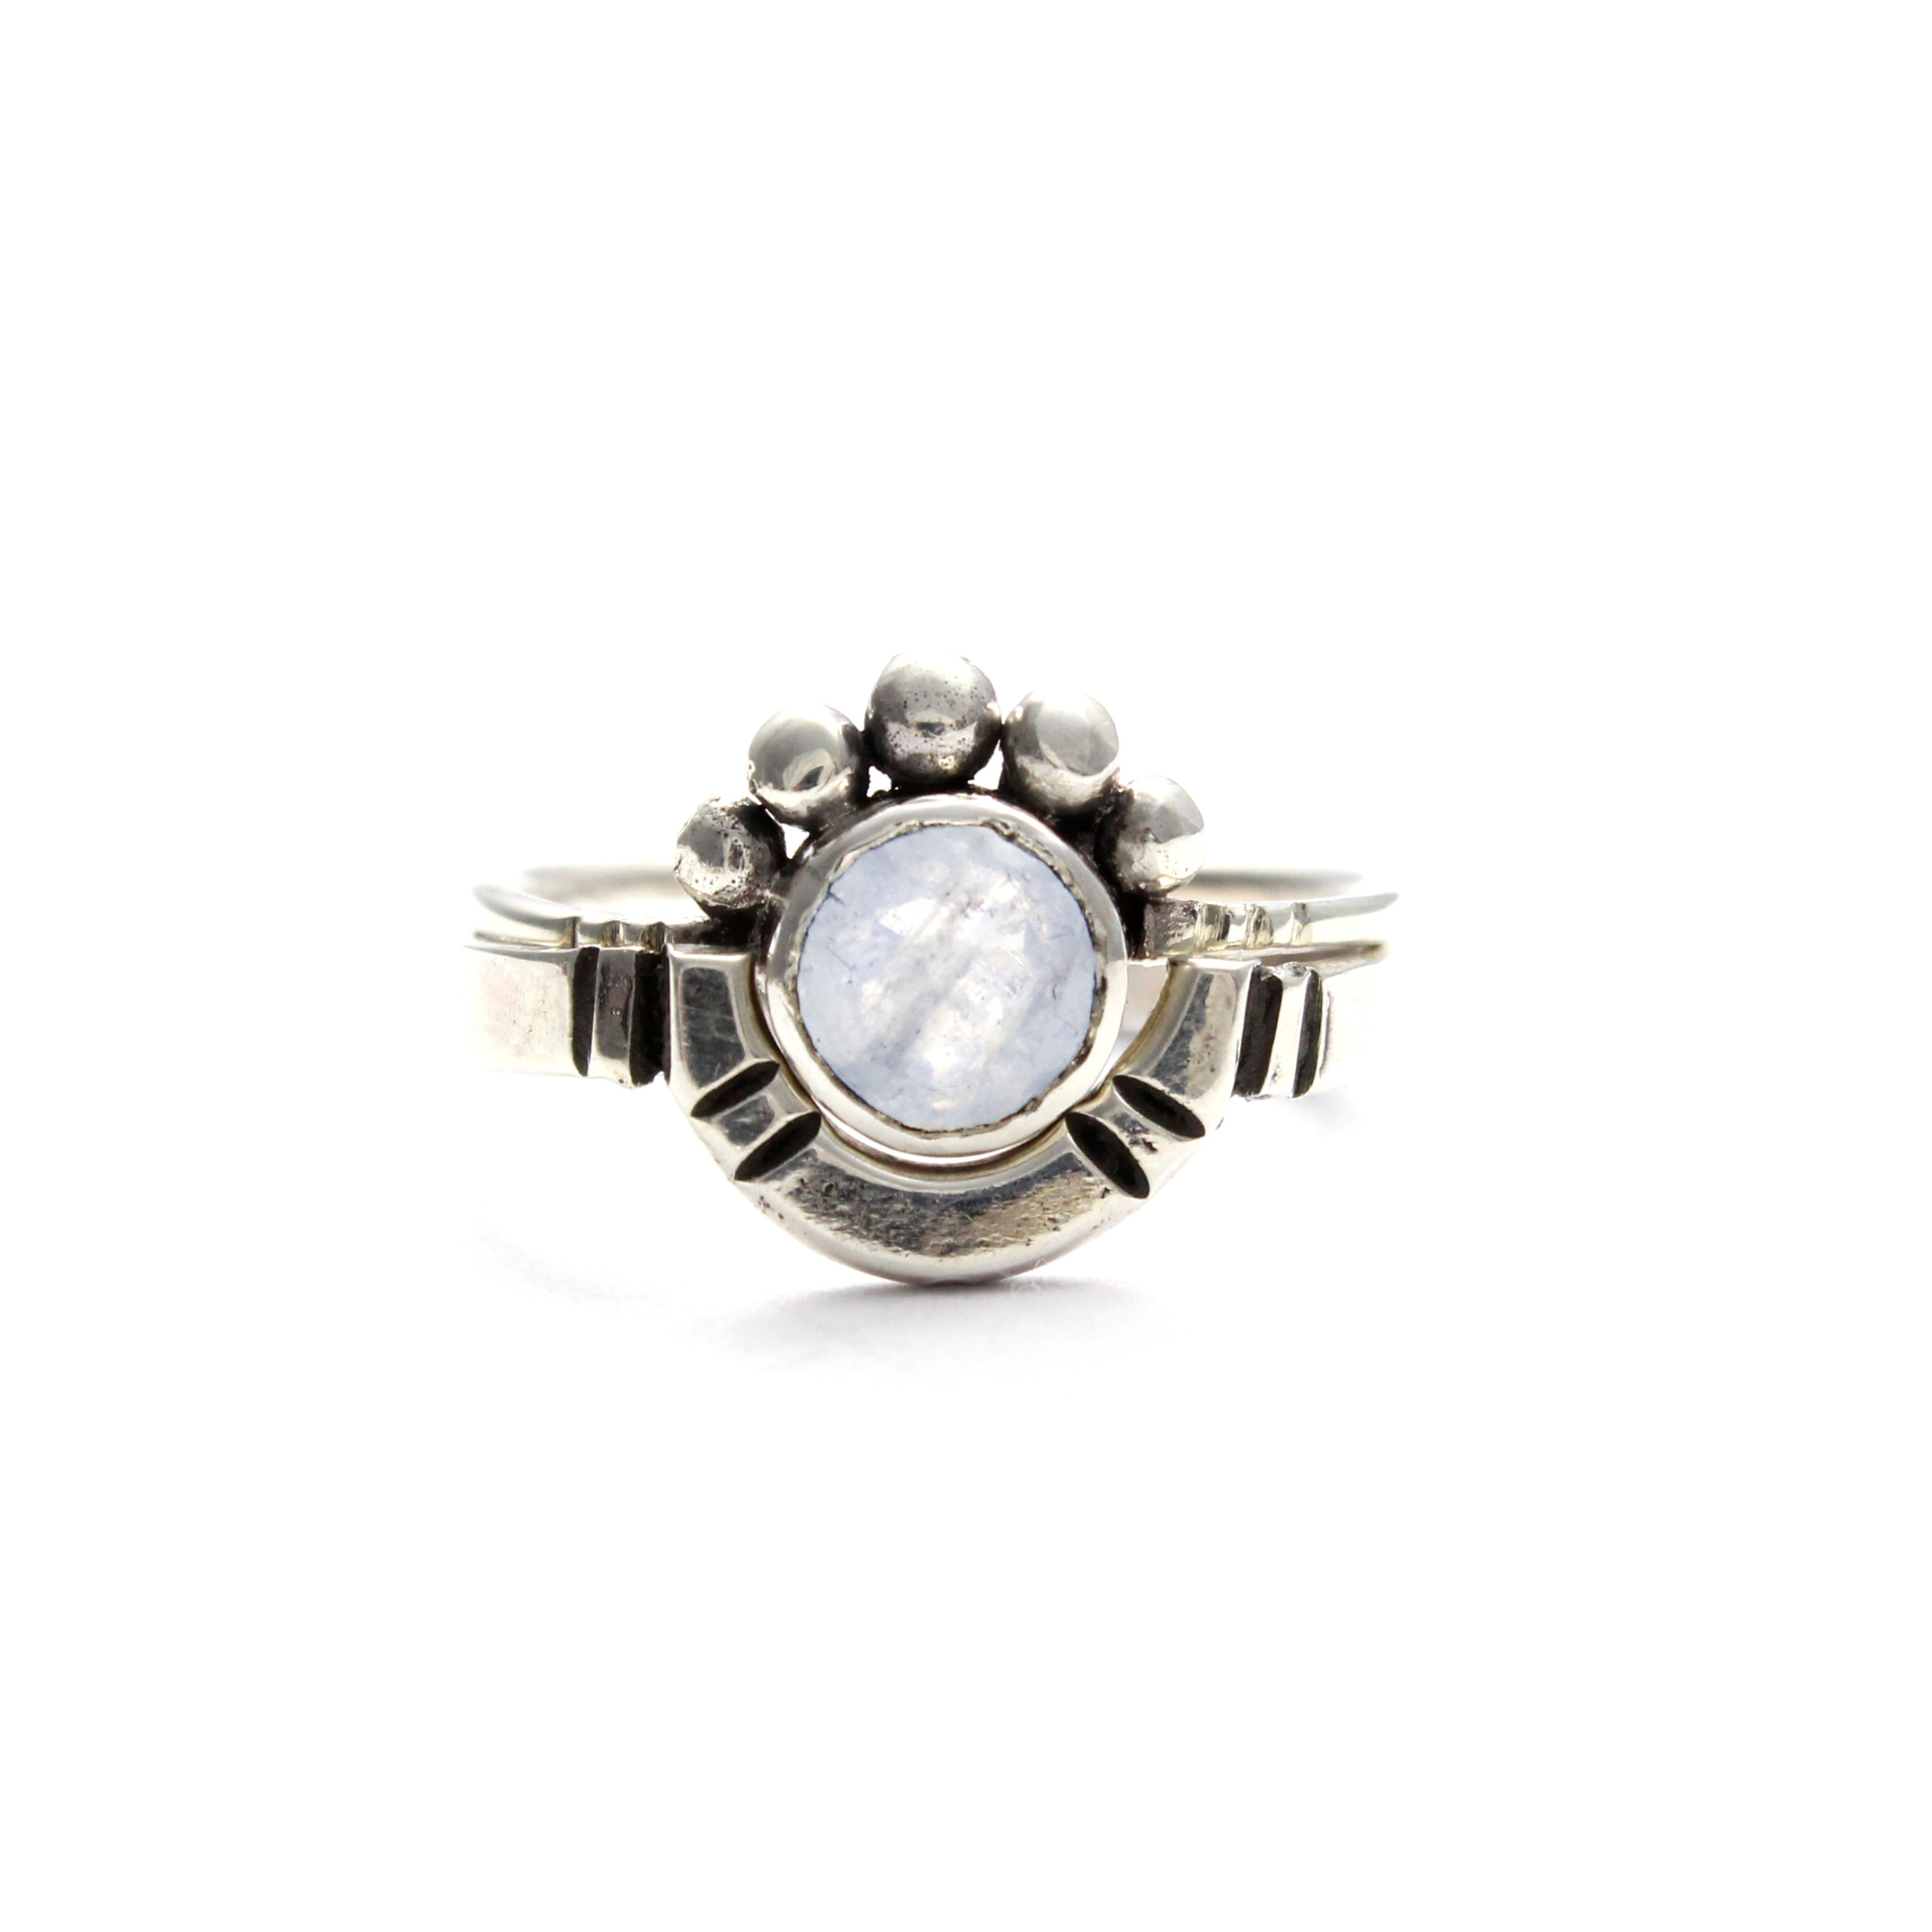 rings silver oxidised moonstone listing vintage jewellery bespoke gift gemstone fullxfull il ring sterling